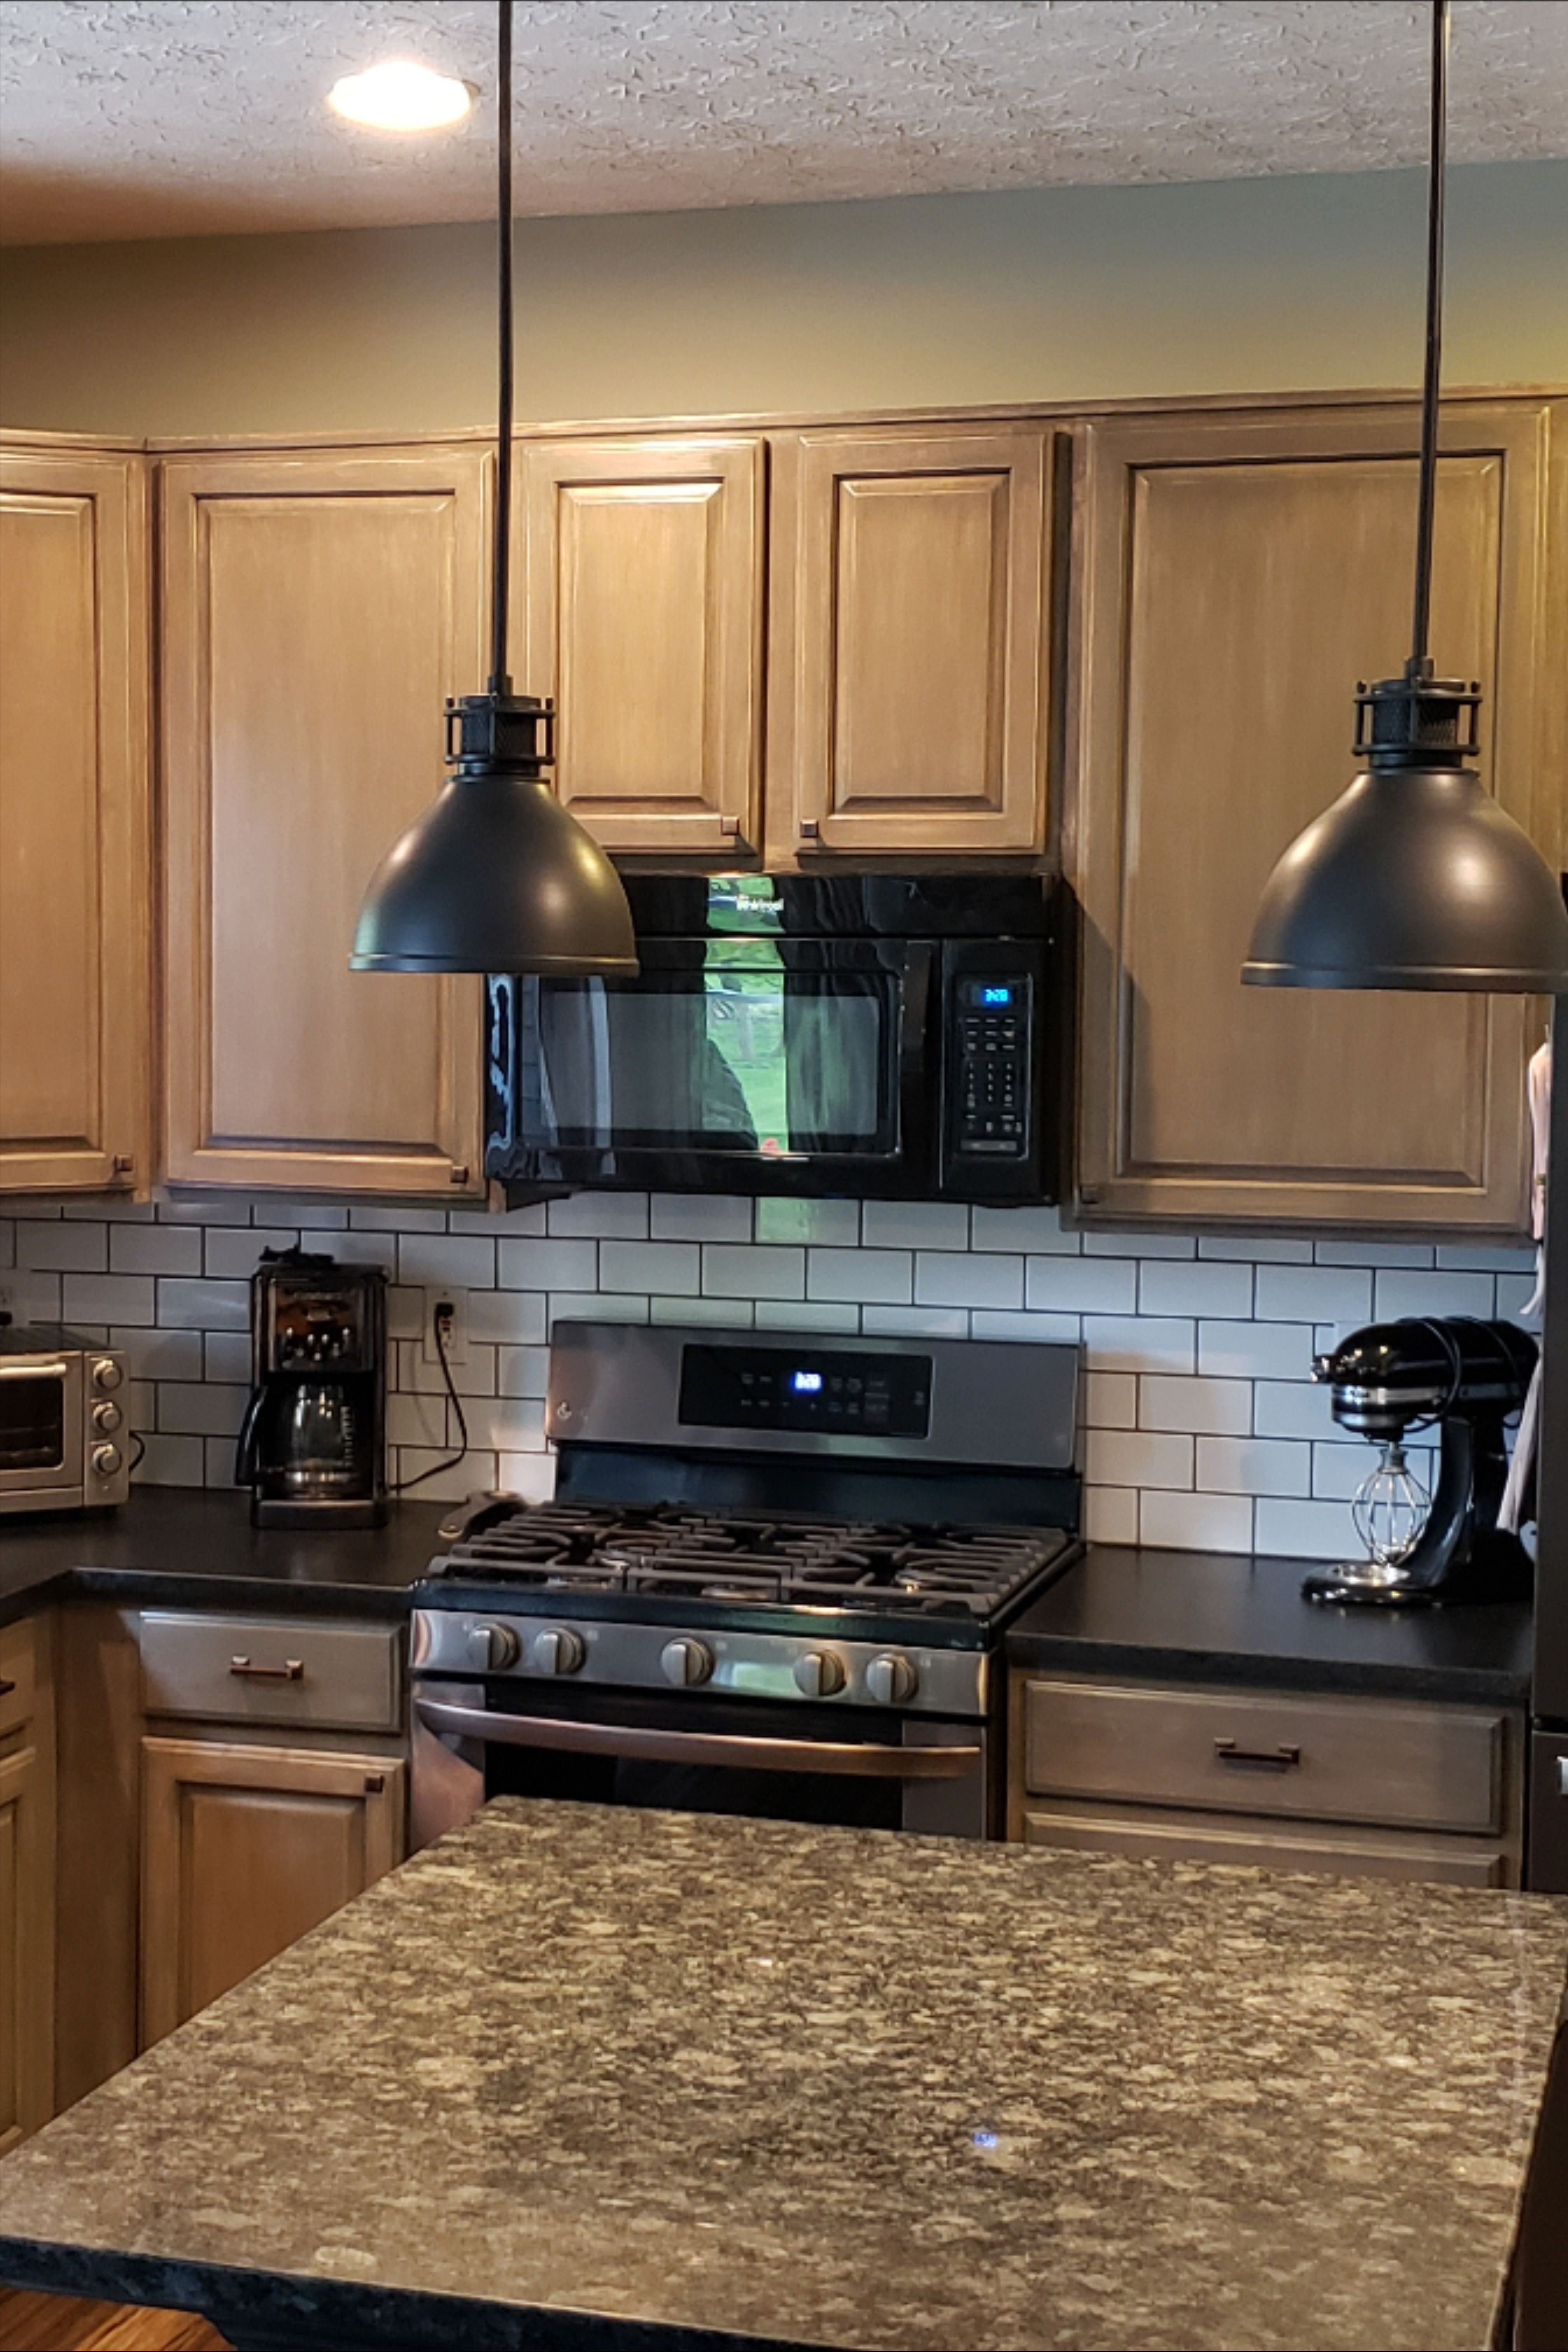 Maple Cabinet Refinish Using General Finishes Graystone In 2020 Maple Kitchen Cabinets Maple Cabinets Refinishing Cabinets